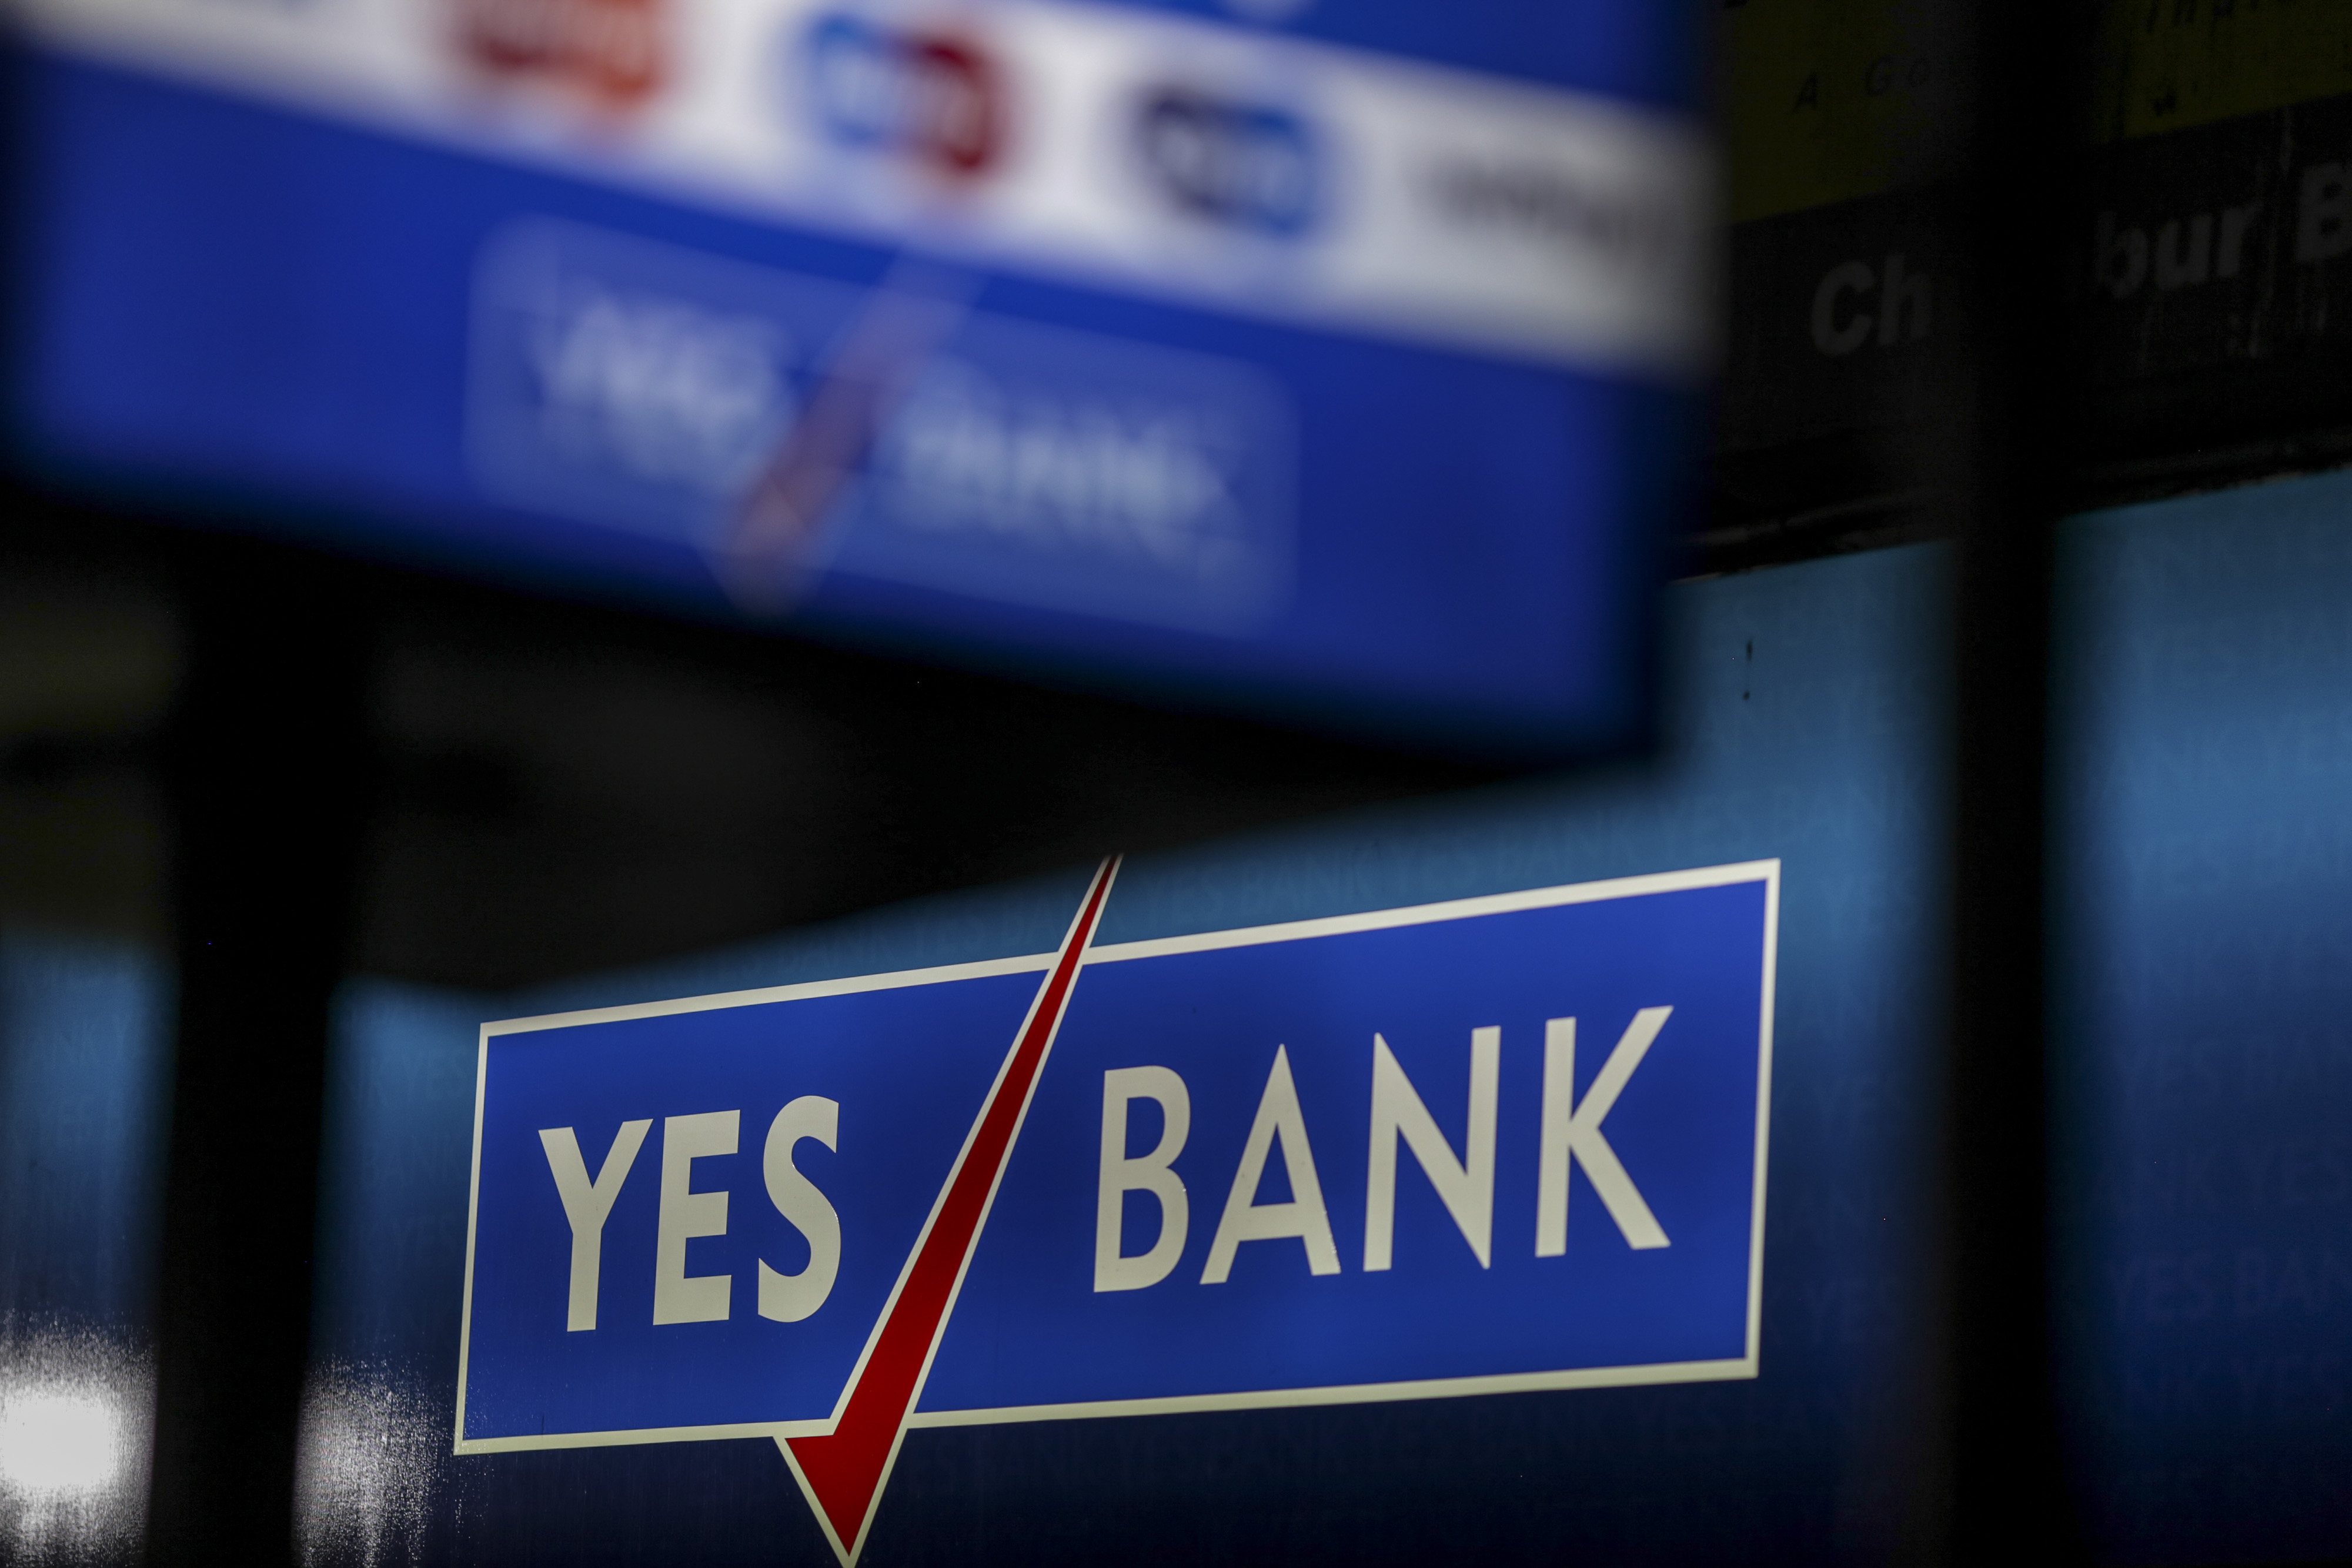 Yes Bank Home Loan Career India S Yes Bank Getting A Director From Rbi Signals Trouble